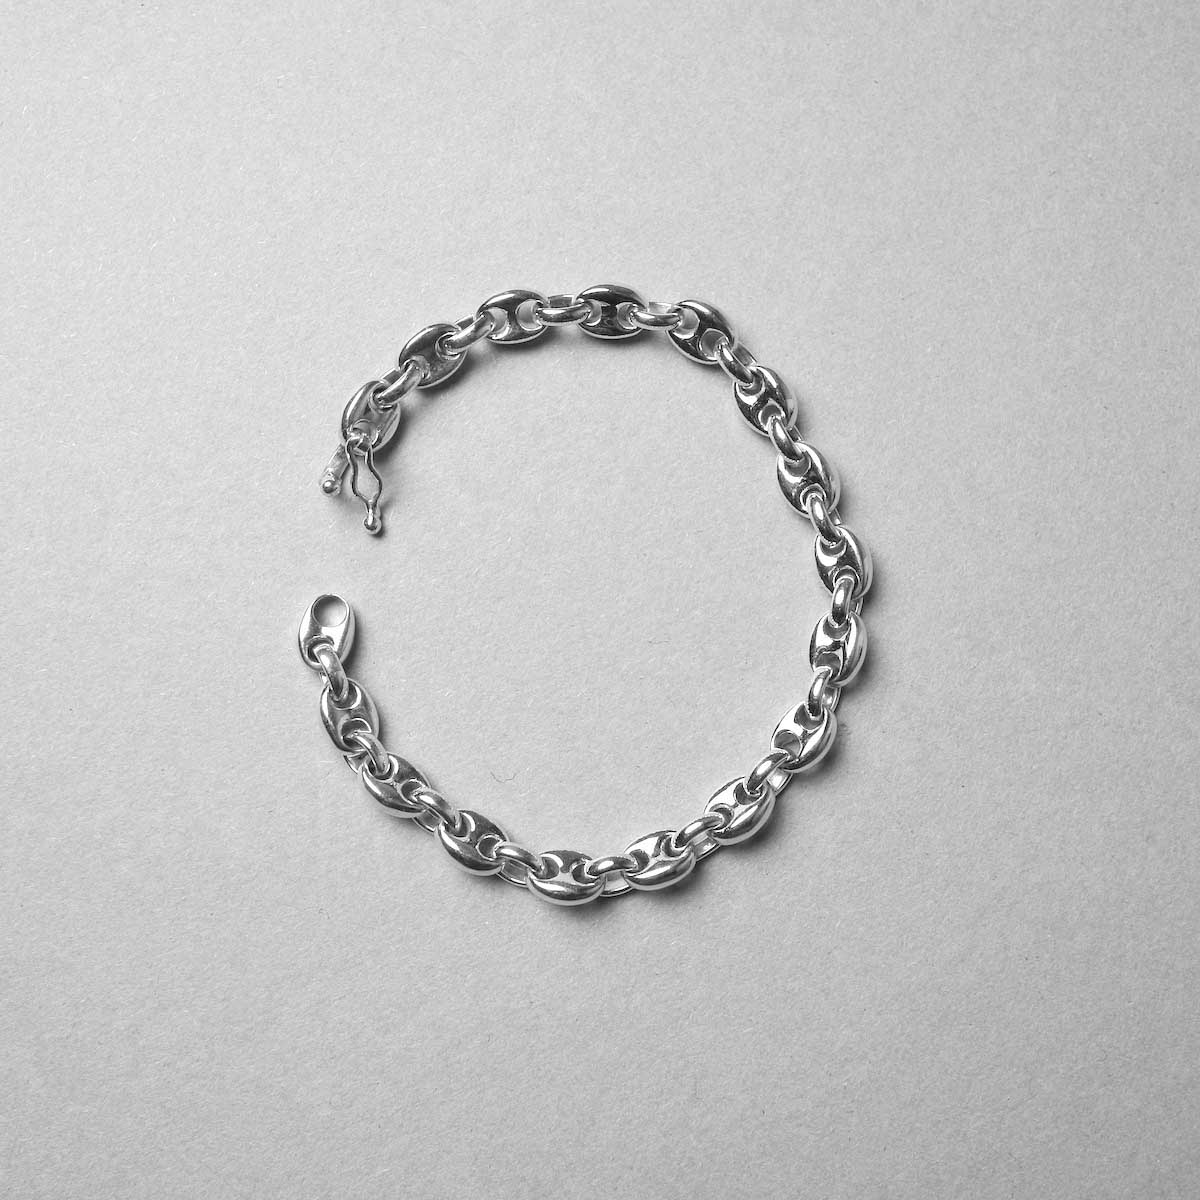 FIFTH GENERAL STORE / Silver Bracelet Special-001 (6mm)